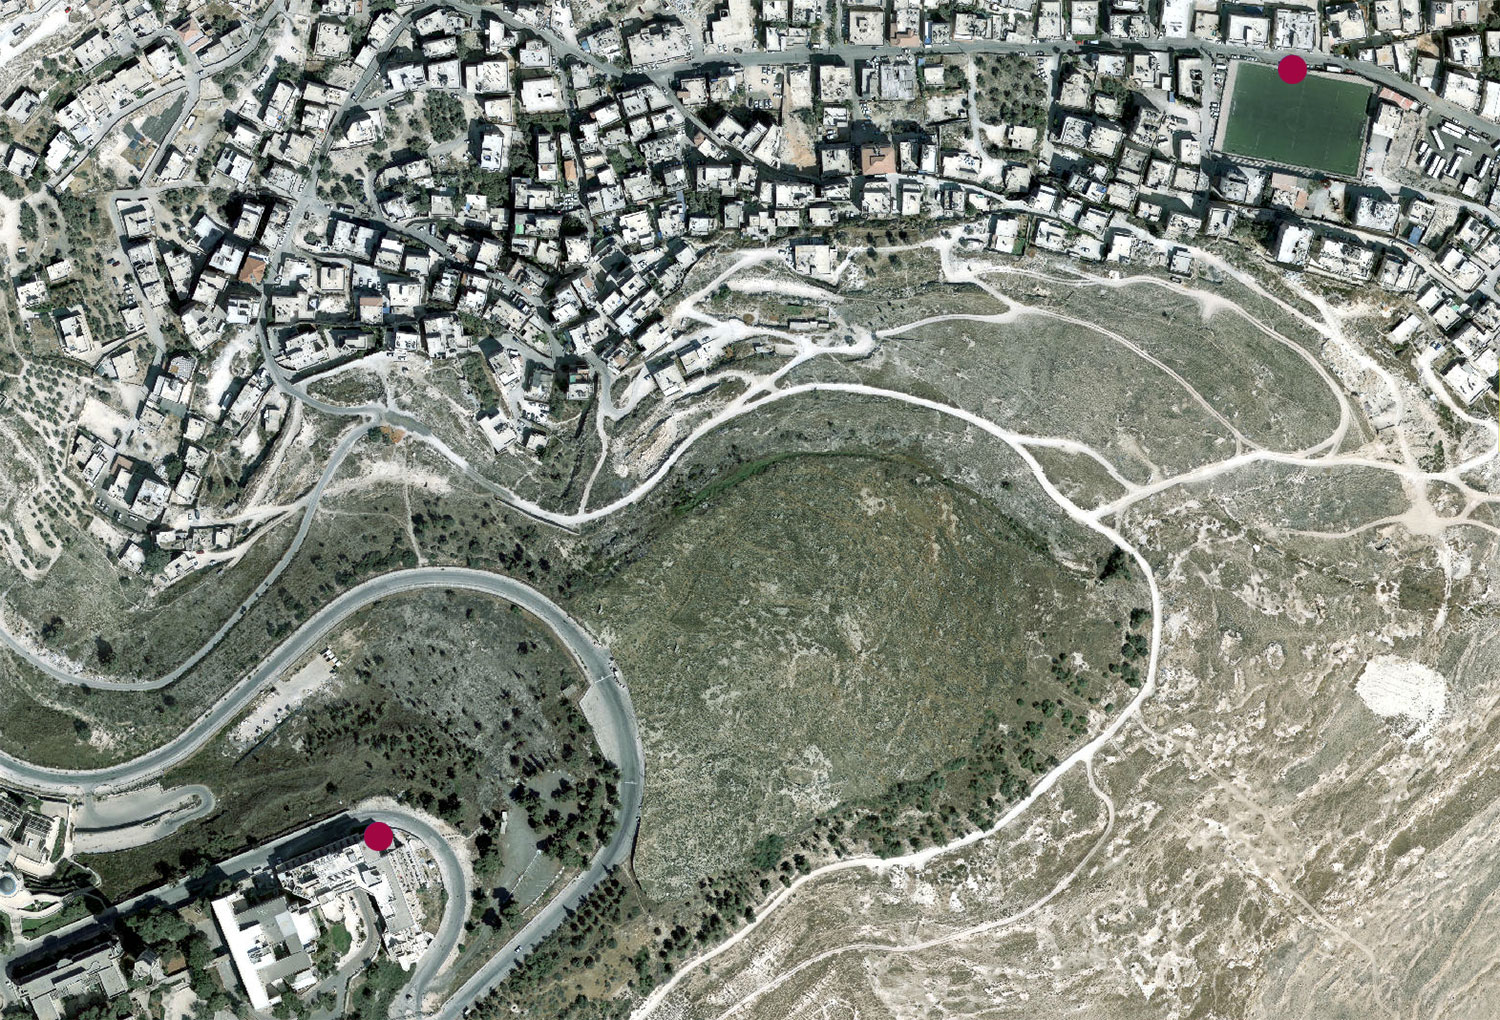 An aerial view on the border between mount Scopus and Issawiya